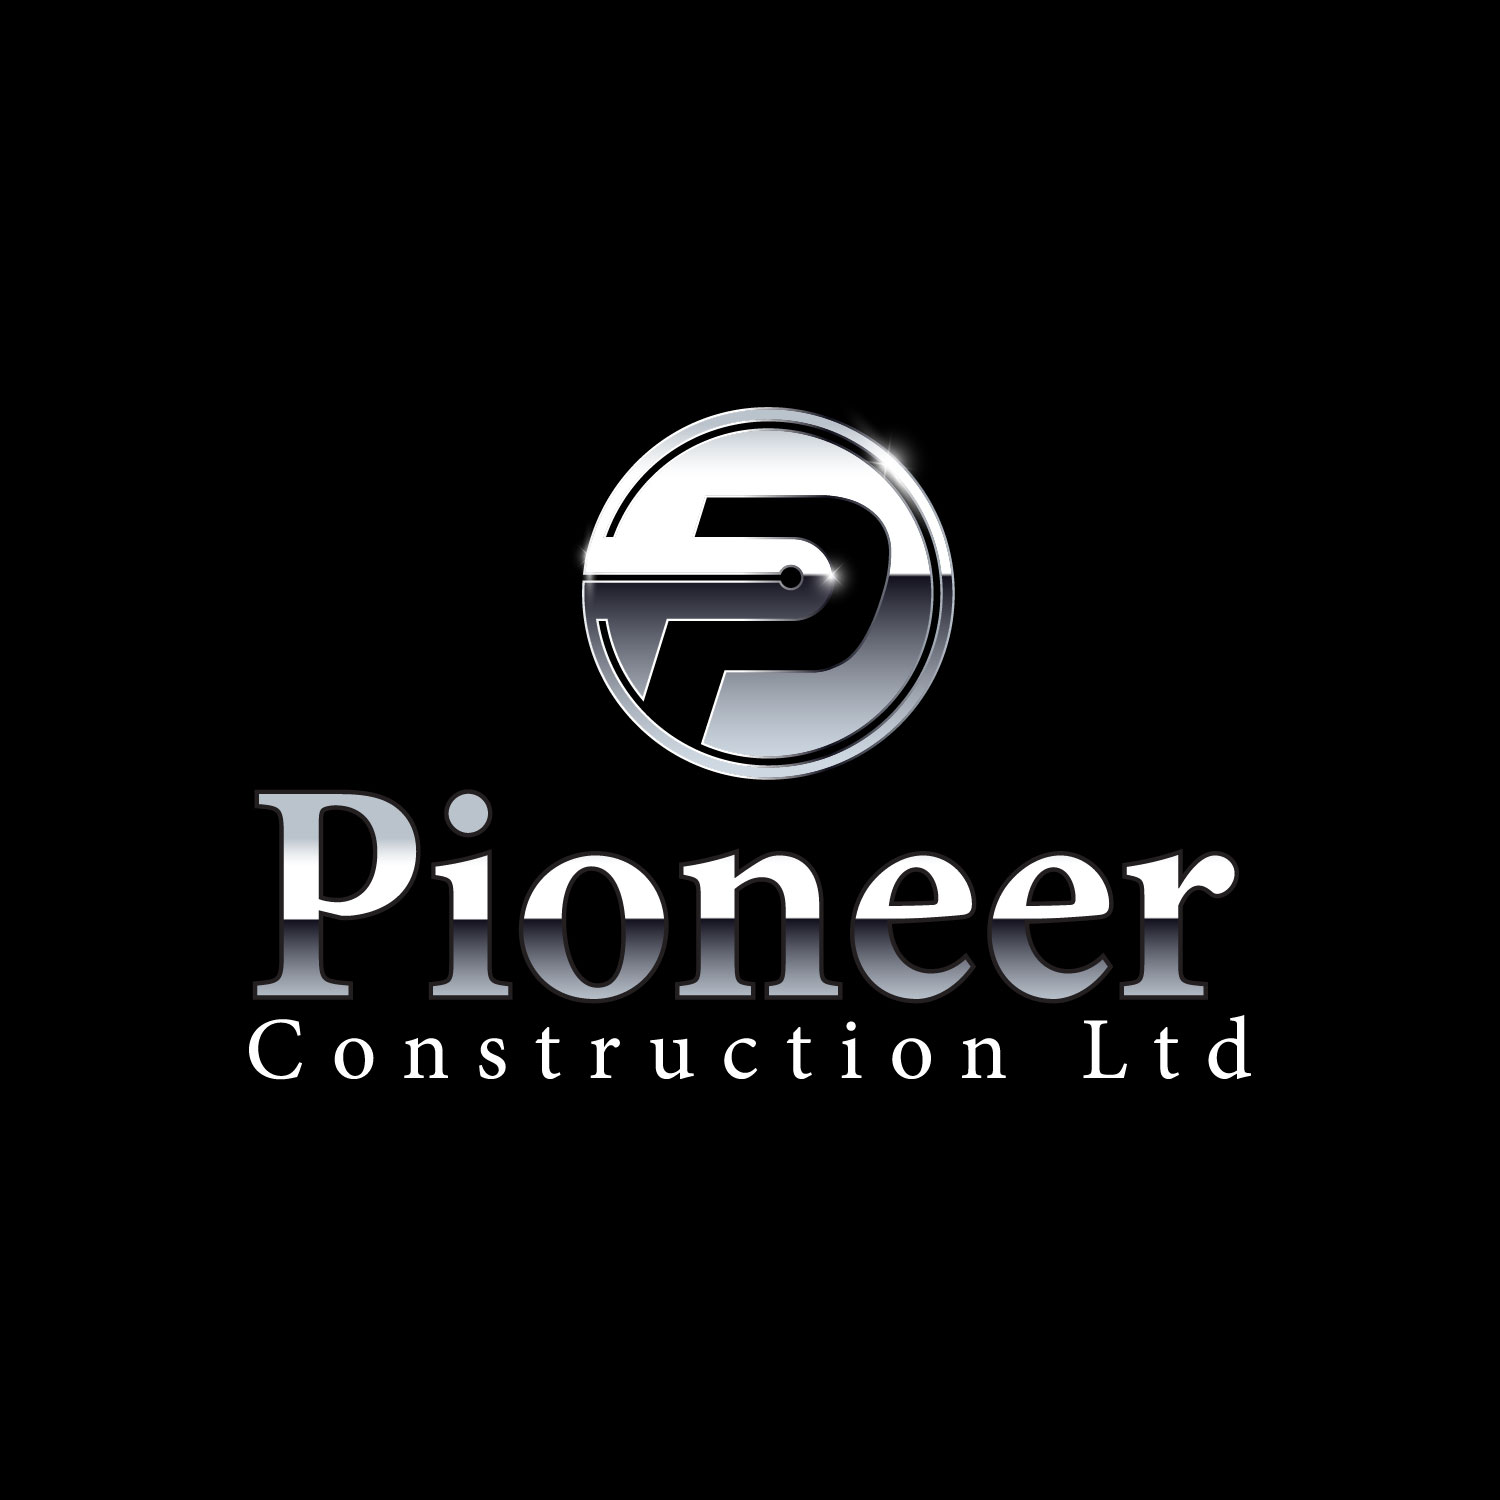 Logo Design by lagalag - Entry No. 48 in the Logo Design Contest Imaginative Logo Design for  Pioneer Construction Ltd.